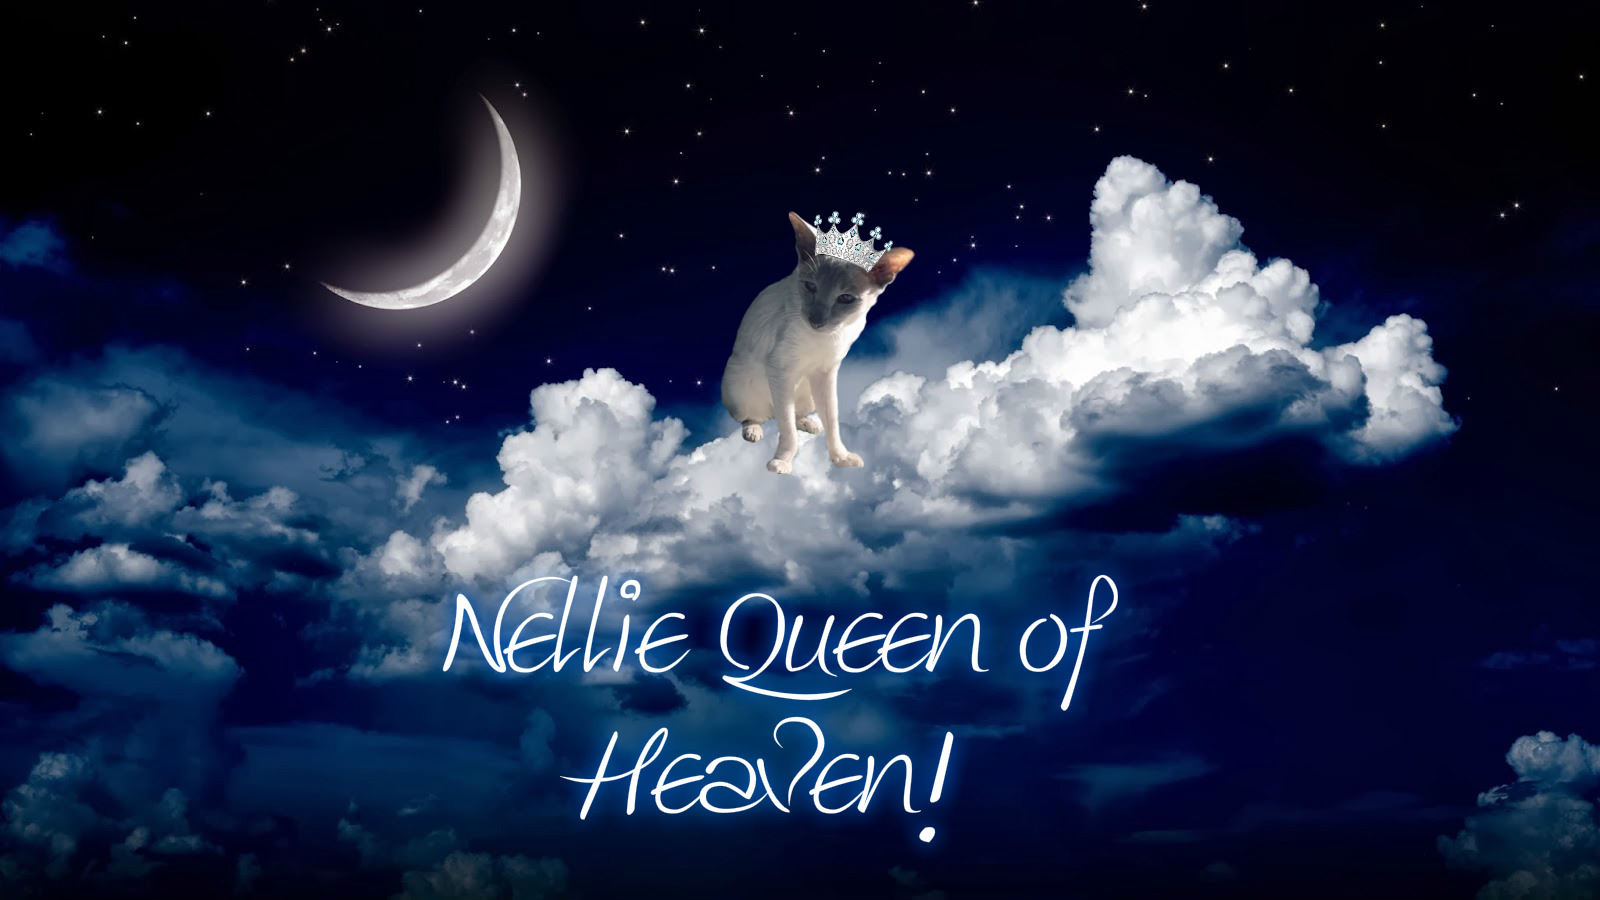 Nellie Queen of Heaven